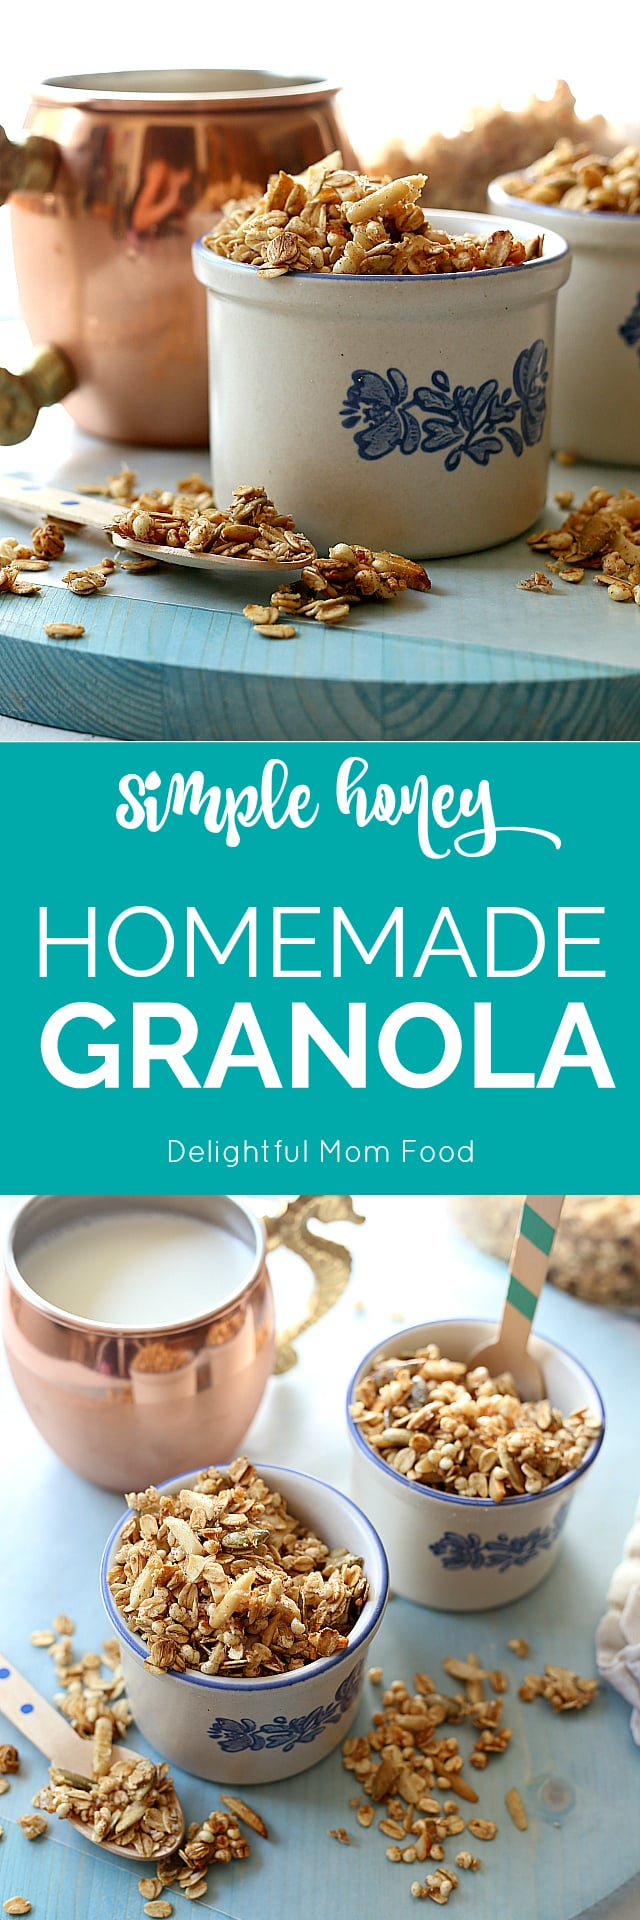 Gluten-Free Homemade honey granola recipe is a great way to start the day! This toasted oats recipe makes a big batch so you can use half of it to turn into no bake granola bars for snack time or breakfast the next day! | Delightful Mom Food